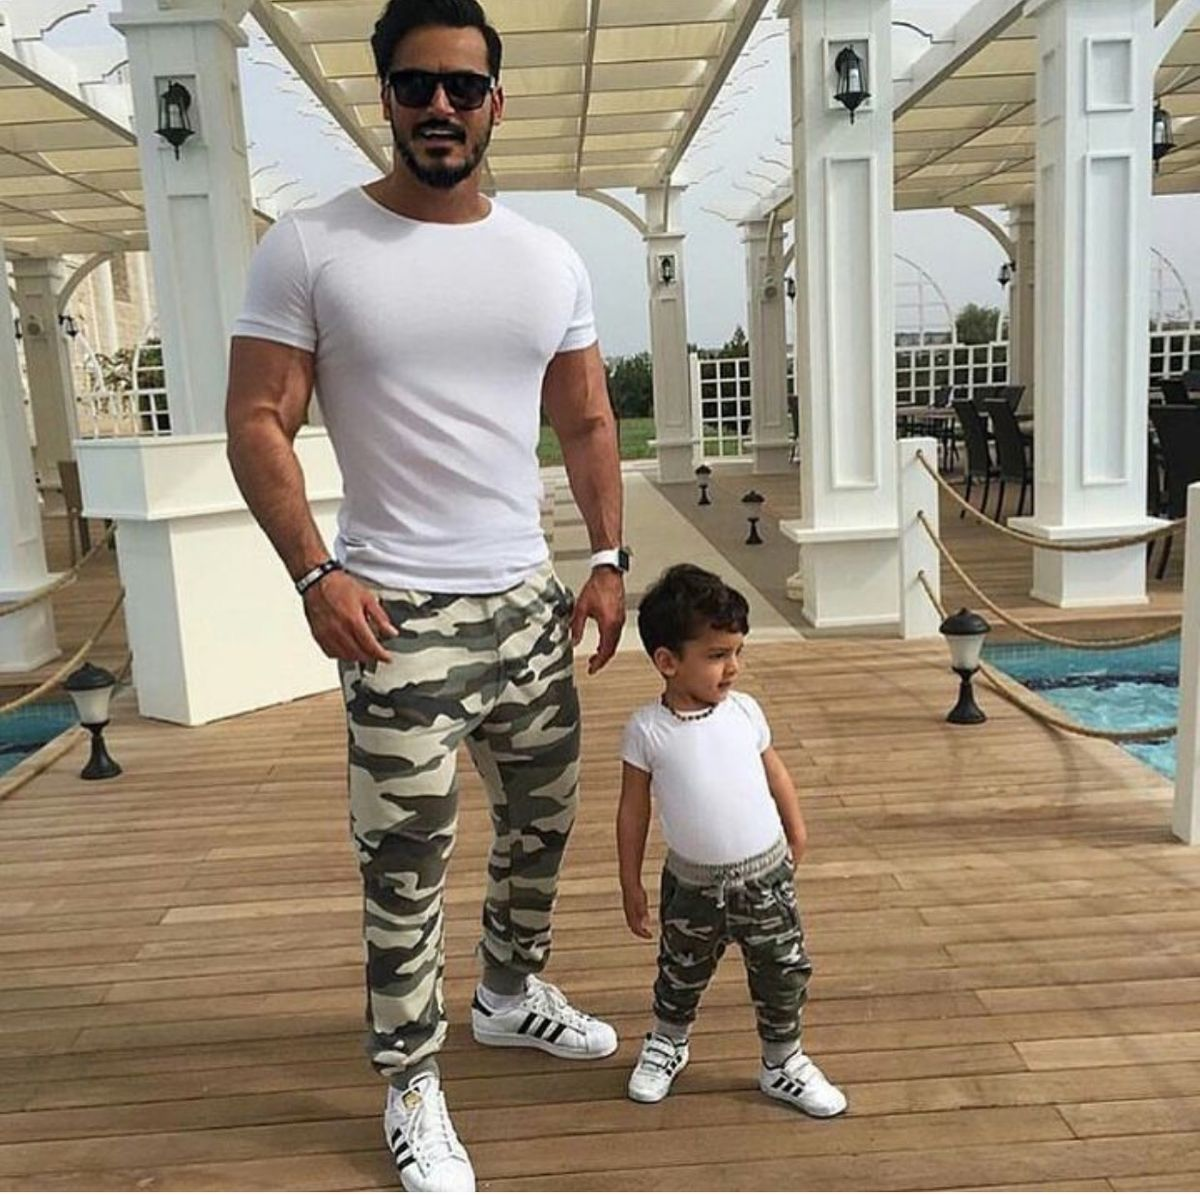 Pin by mikin ltd on family matchingtwinning clothing daddy son